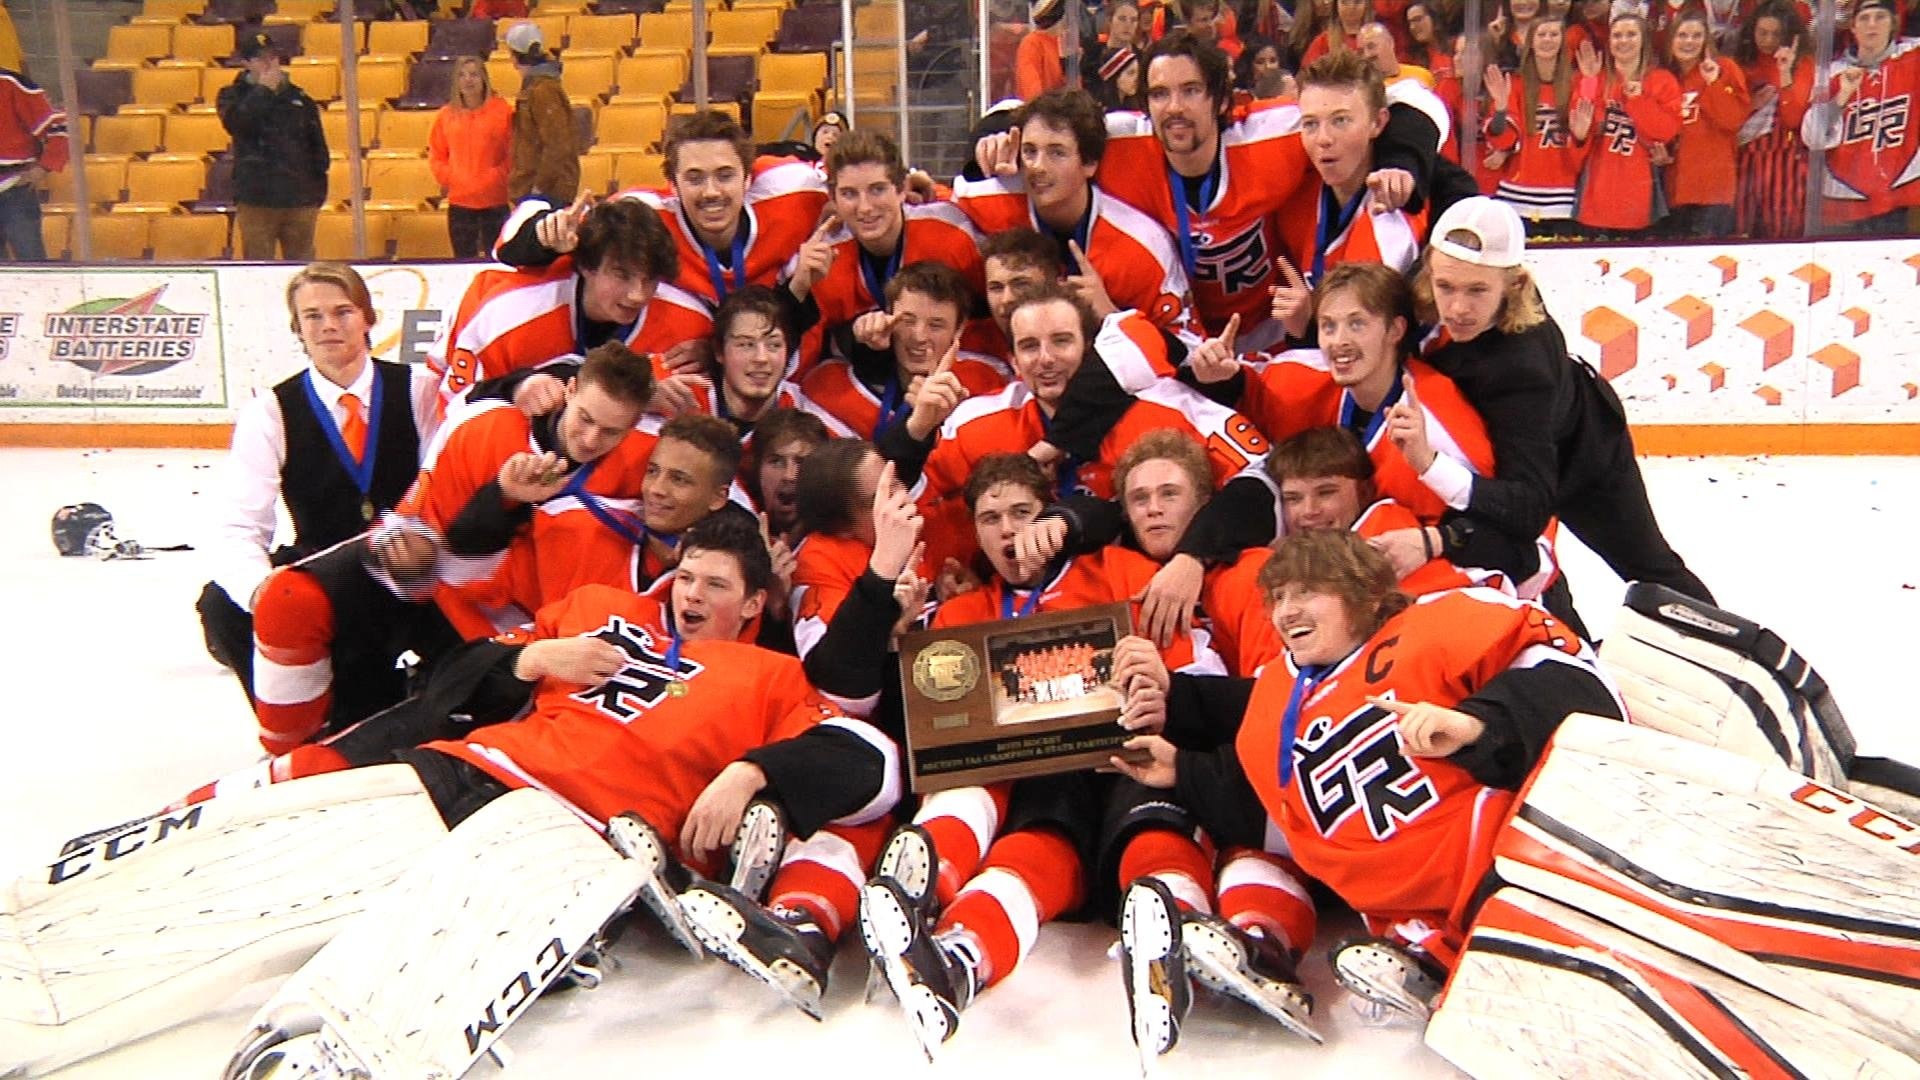 MN H.S.: Even With Tourney Experience, Grand Rapids Understands Tough Road Ahead